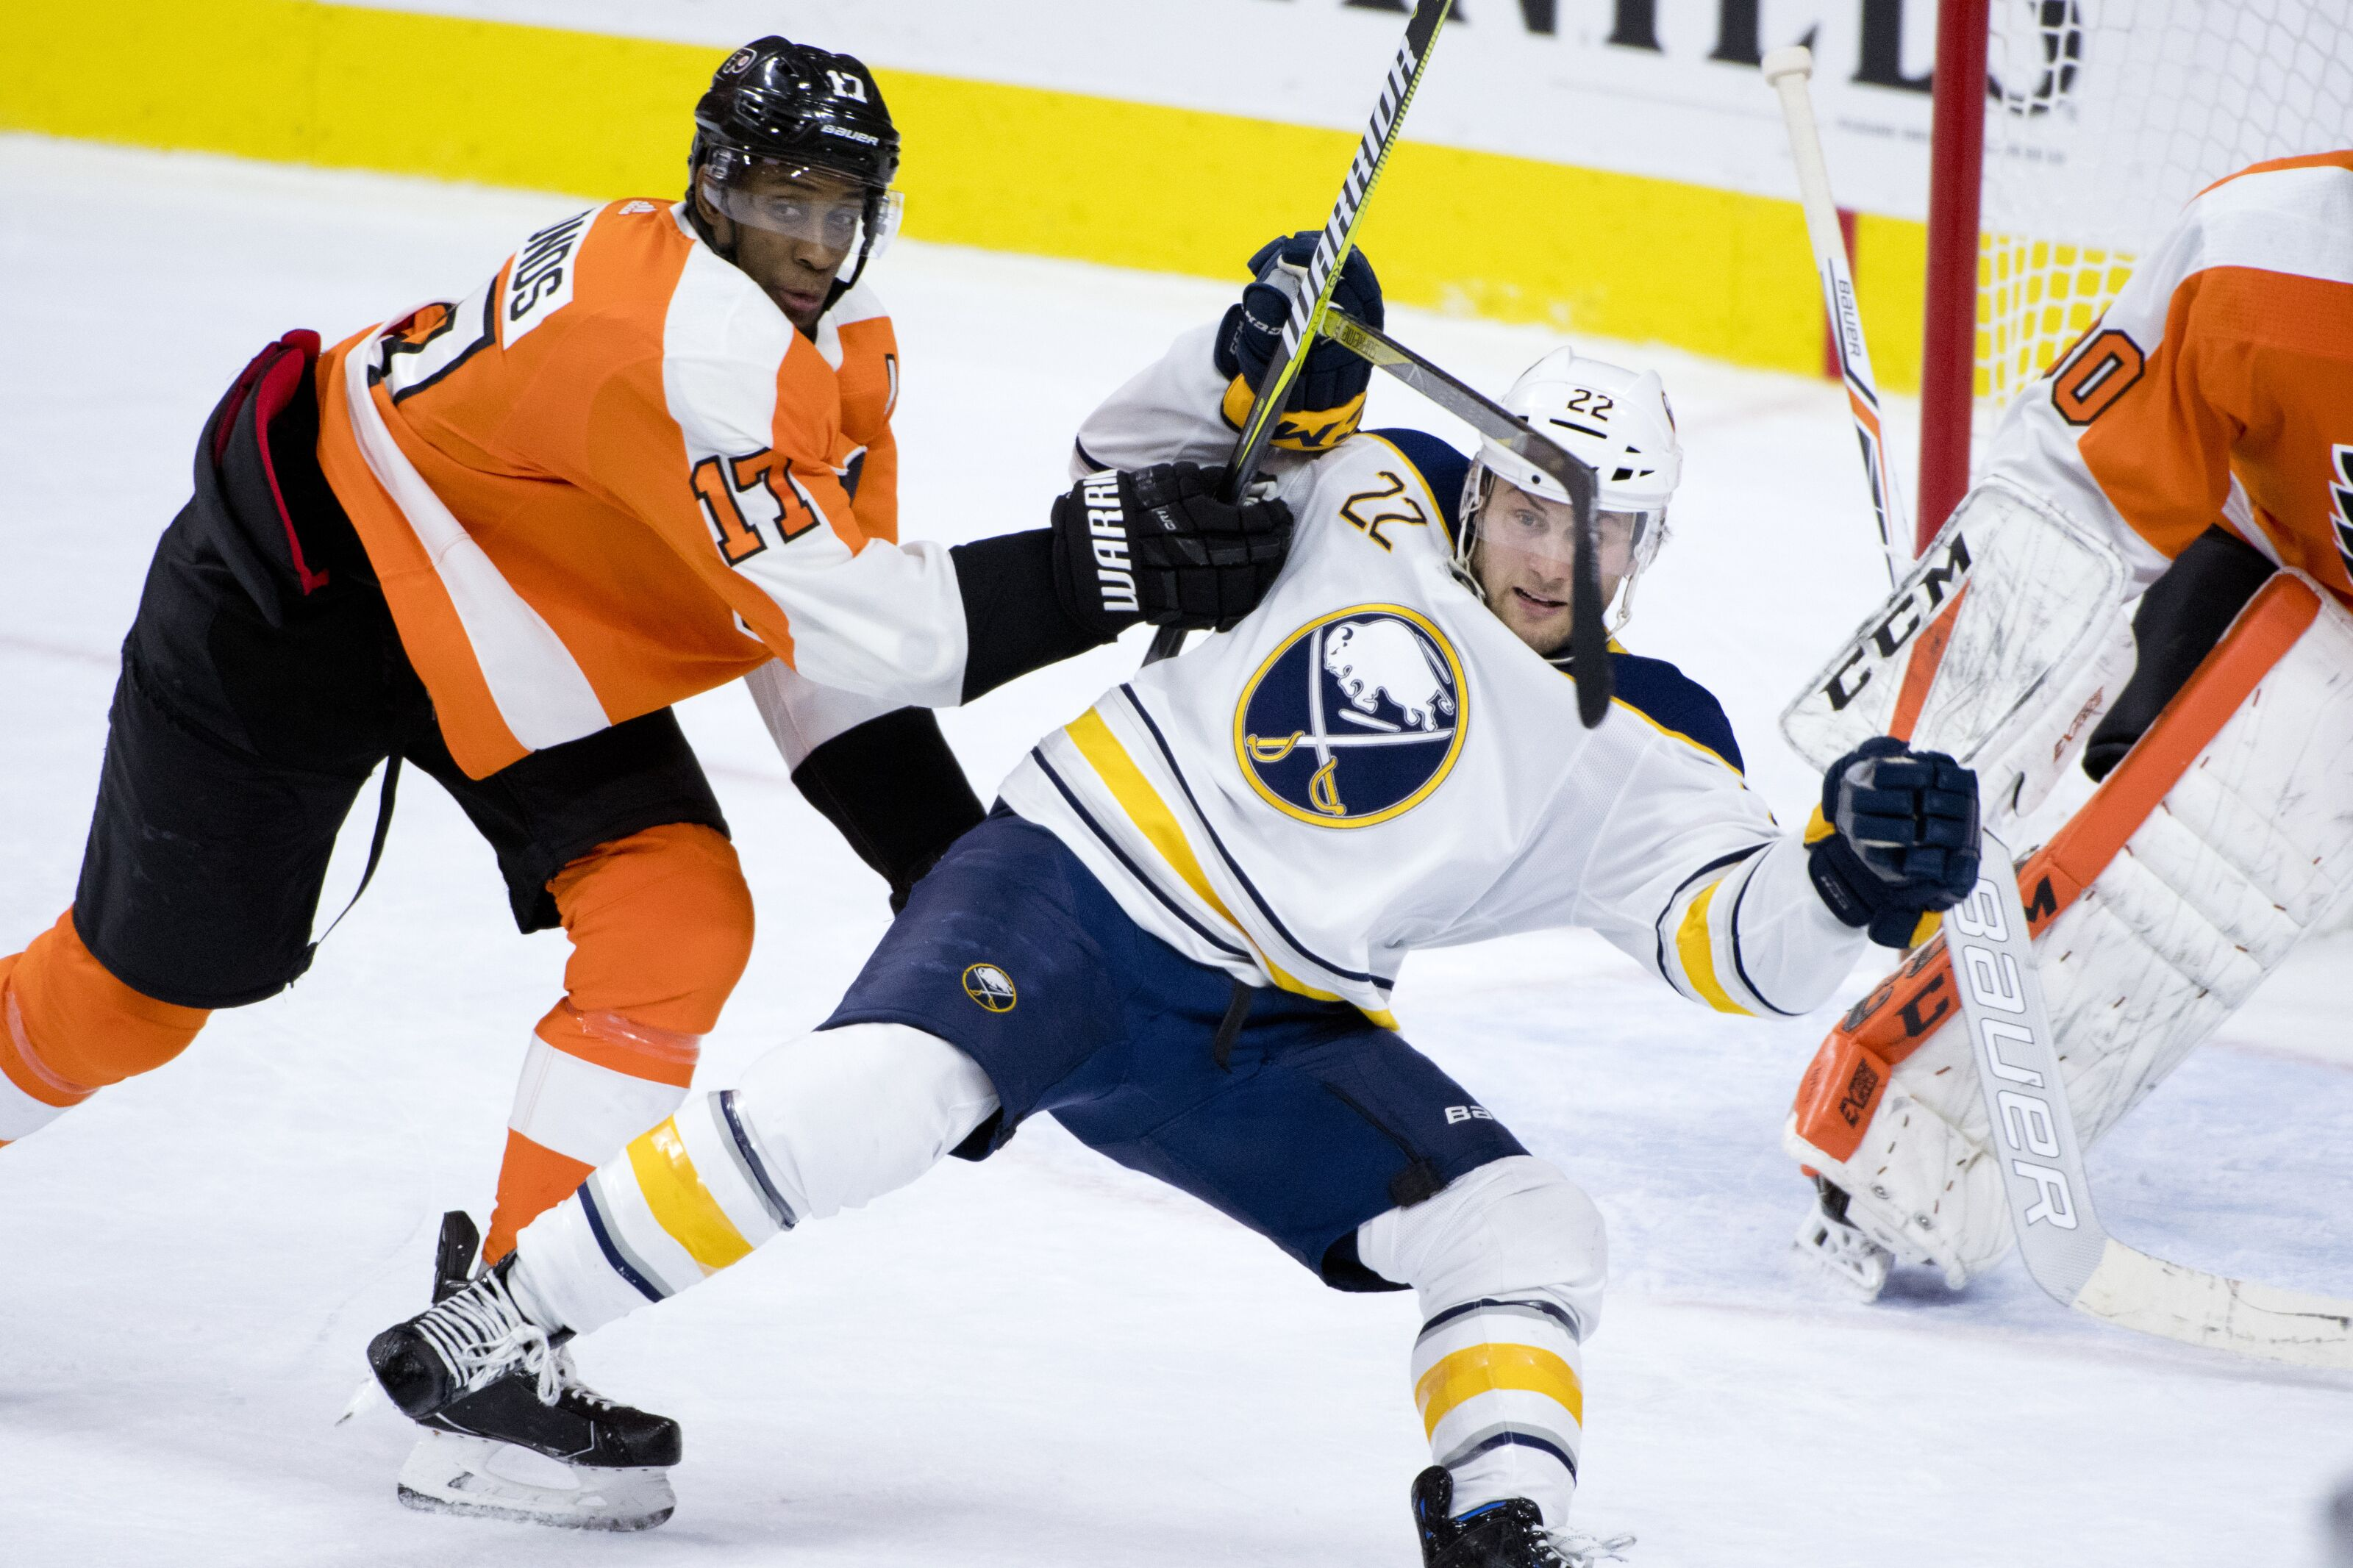 Buffalo Sabres: Johan Larsson's Line Has Been Playing Well, But It's Time to Start Scoring